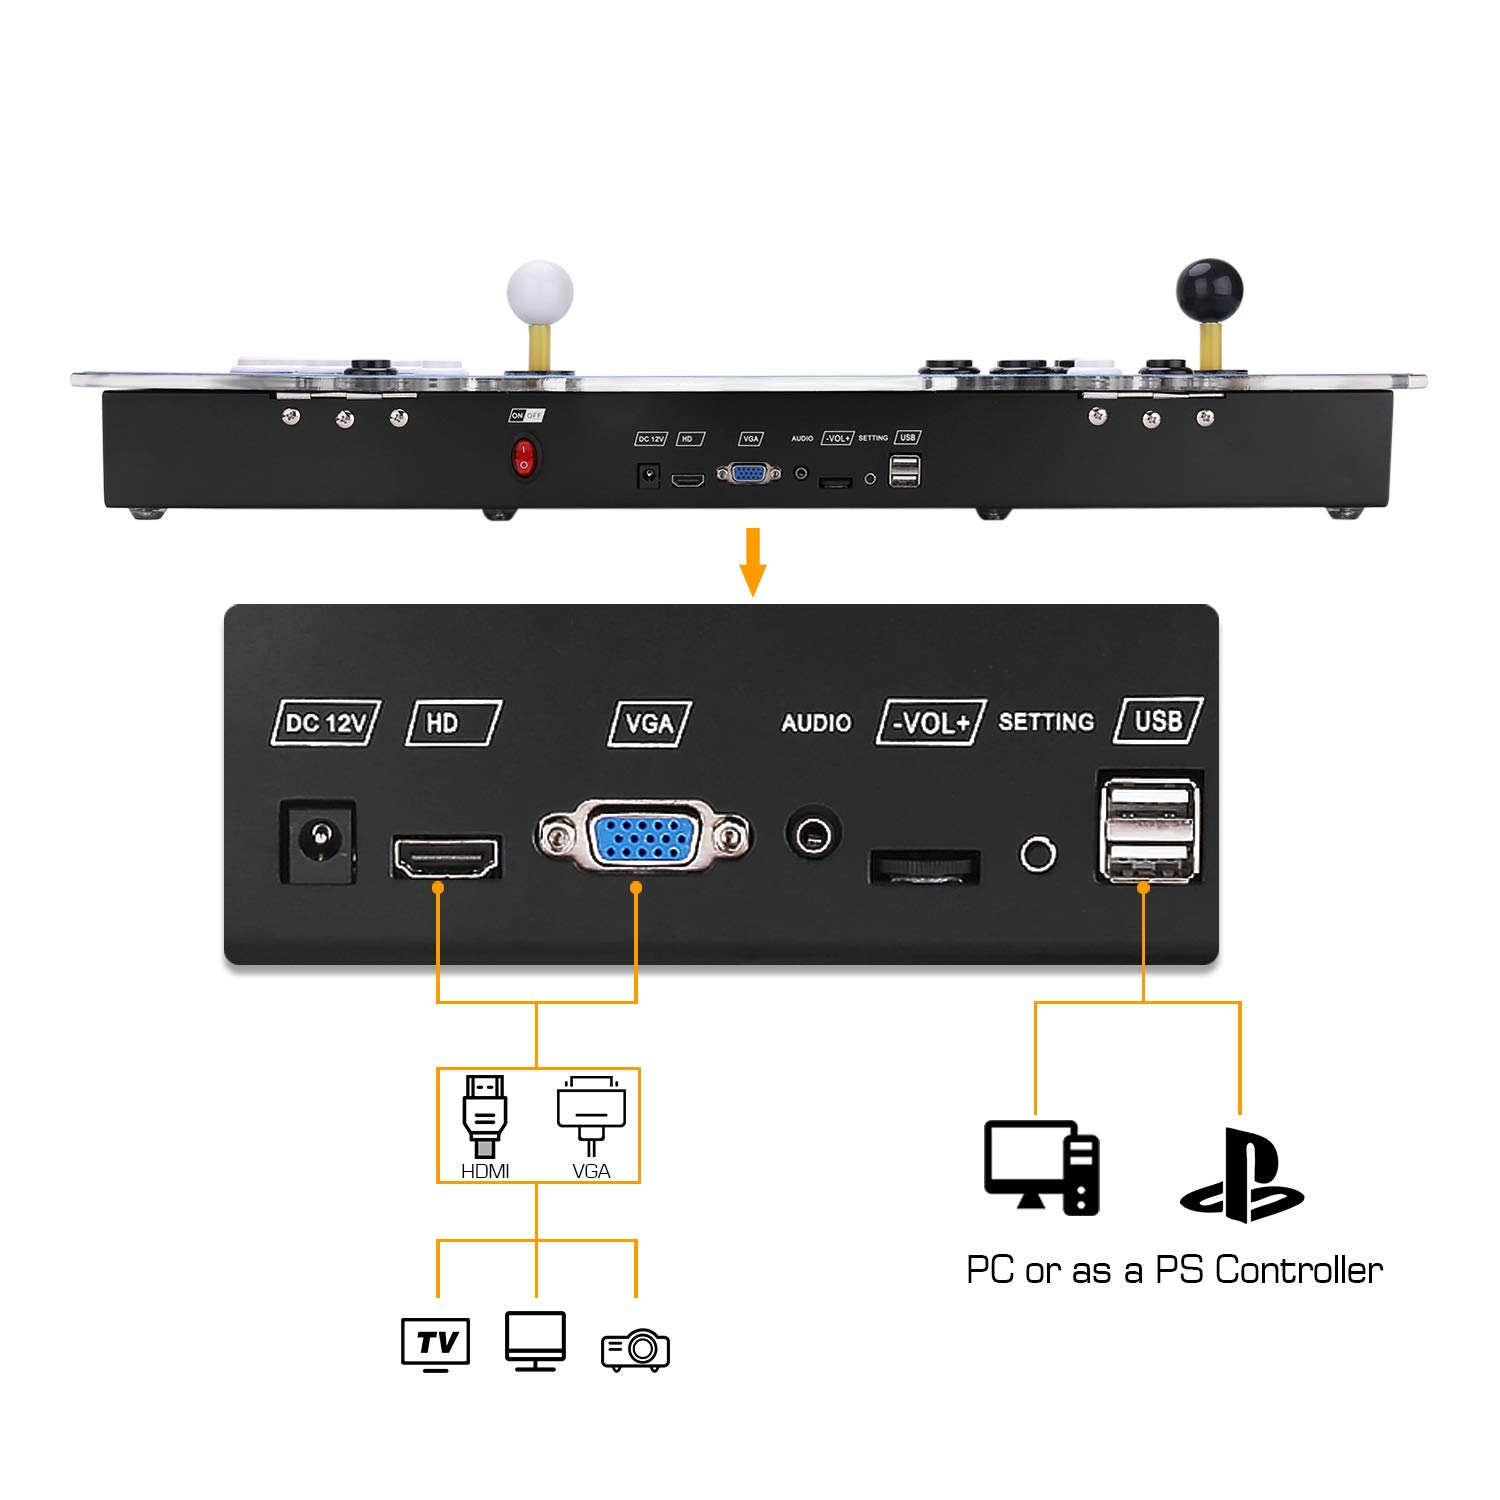 Spmywin 3D Pandoras Key 7 Arcade Video Game Console 1080P Full HD Support to Expand 2D & 3D Games Come with 32G U Drive by Spmywin (Image #6)